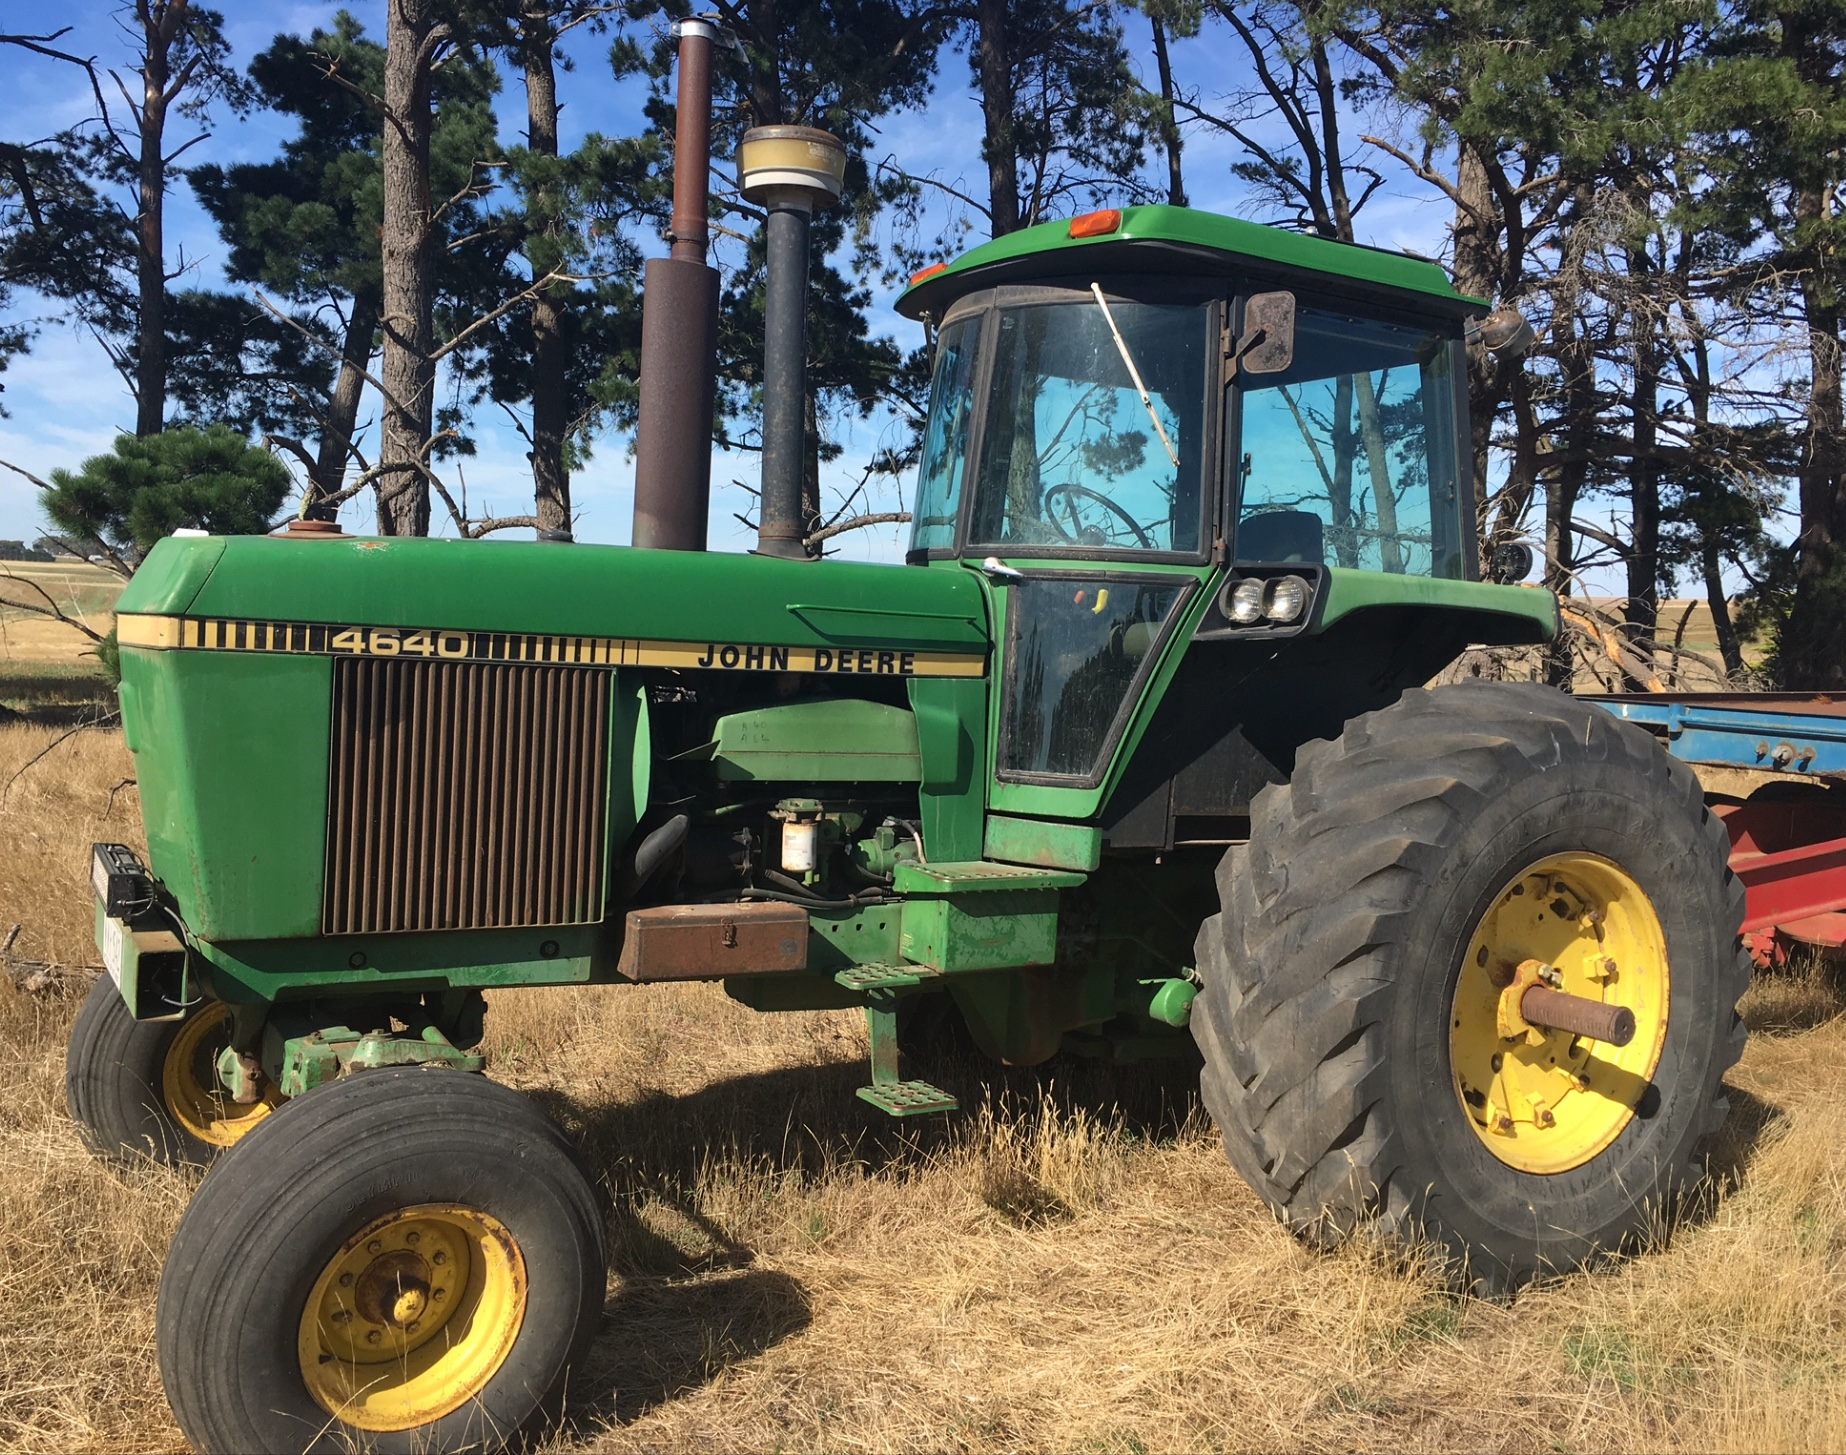 John Deere 4640 Tractor For Sale - Well Kept | Machinery